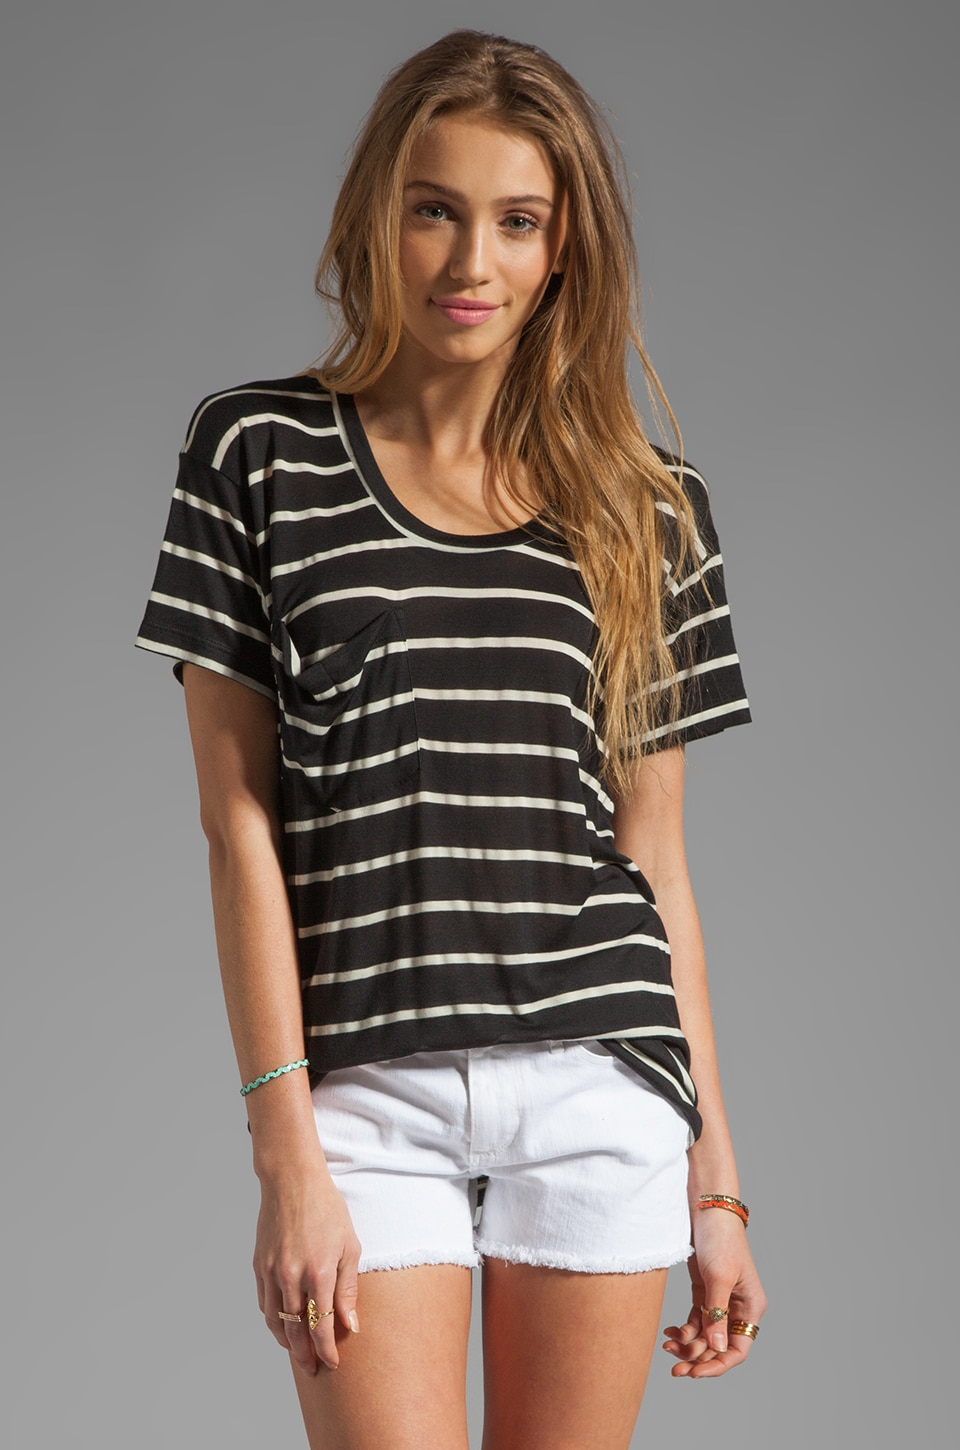 Kain Sheer Jersey Classic Pocket Tee in Black/White Stripe